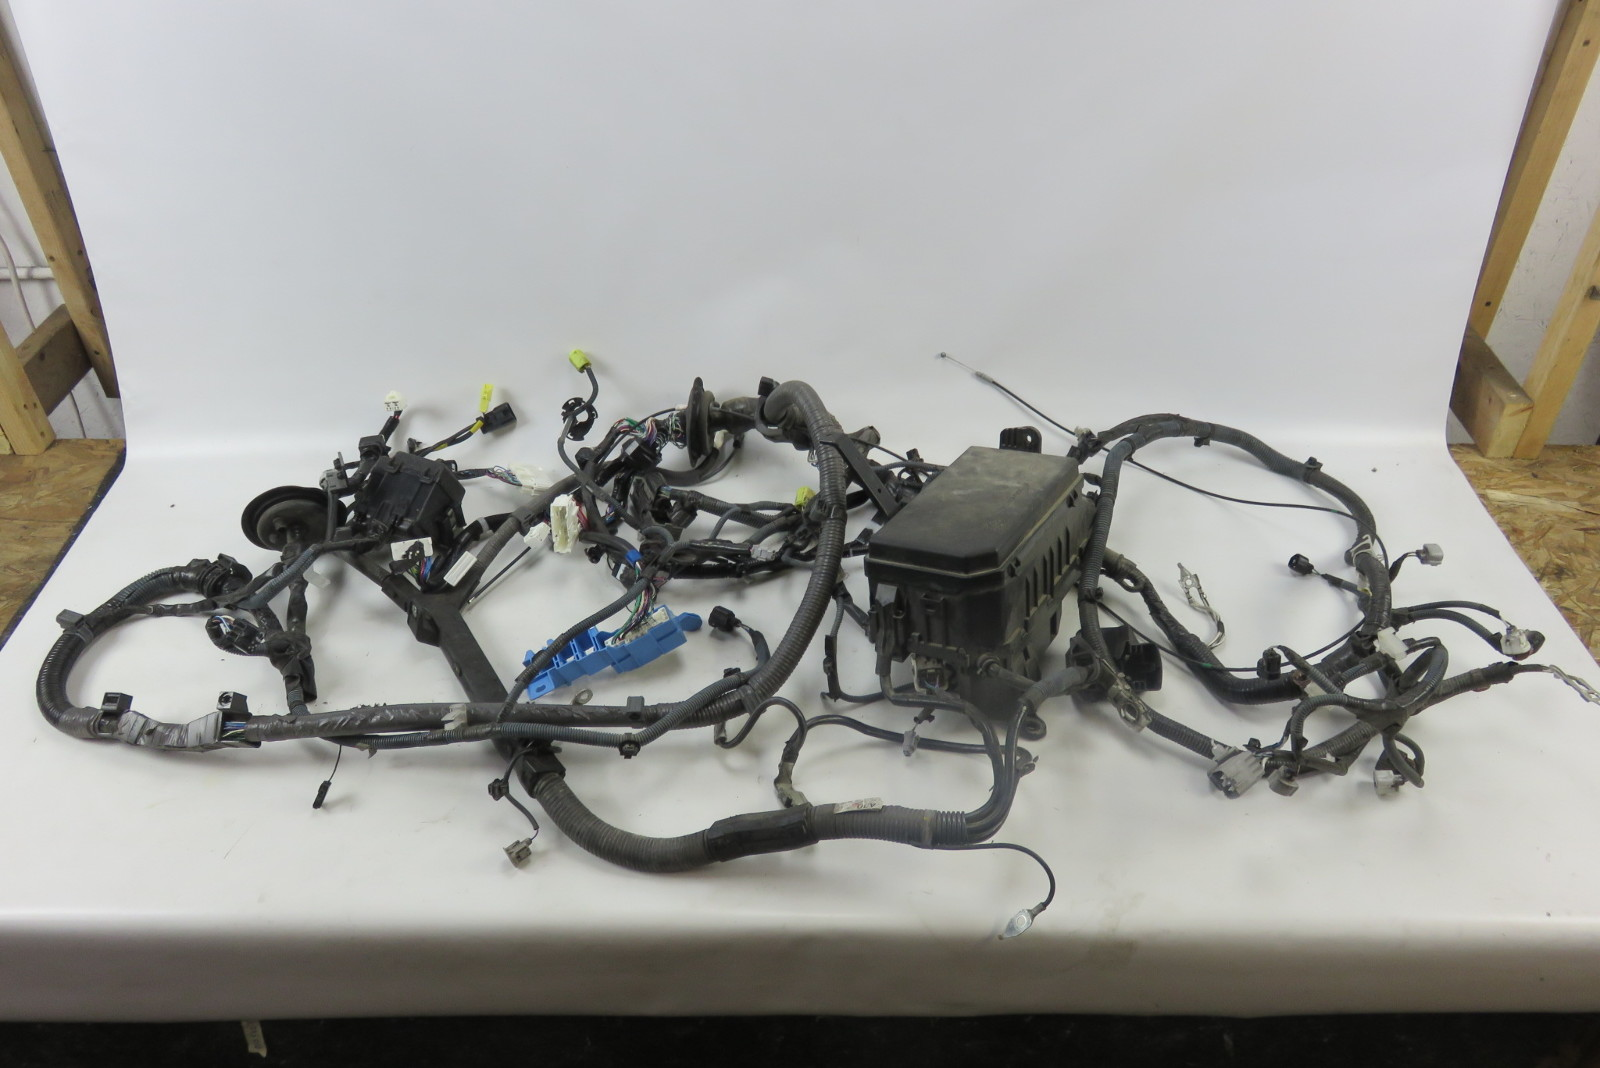 hight resolution of 12 lexus gx460 wiring harness w fuse box engine room 82111 60p01 8211160p01